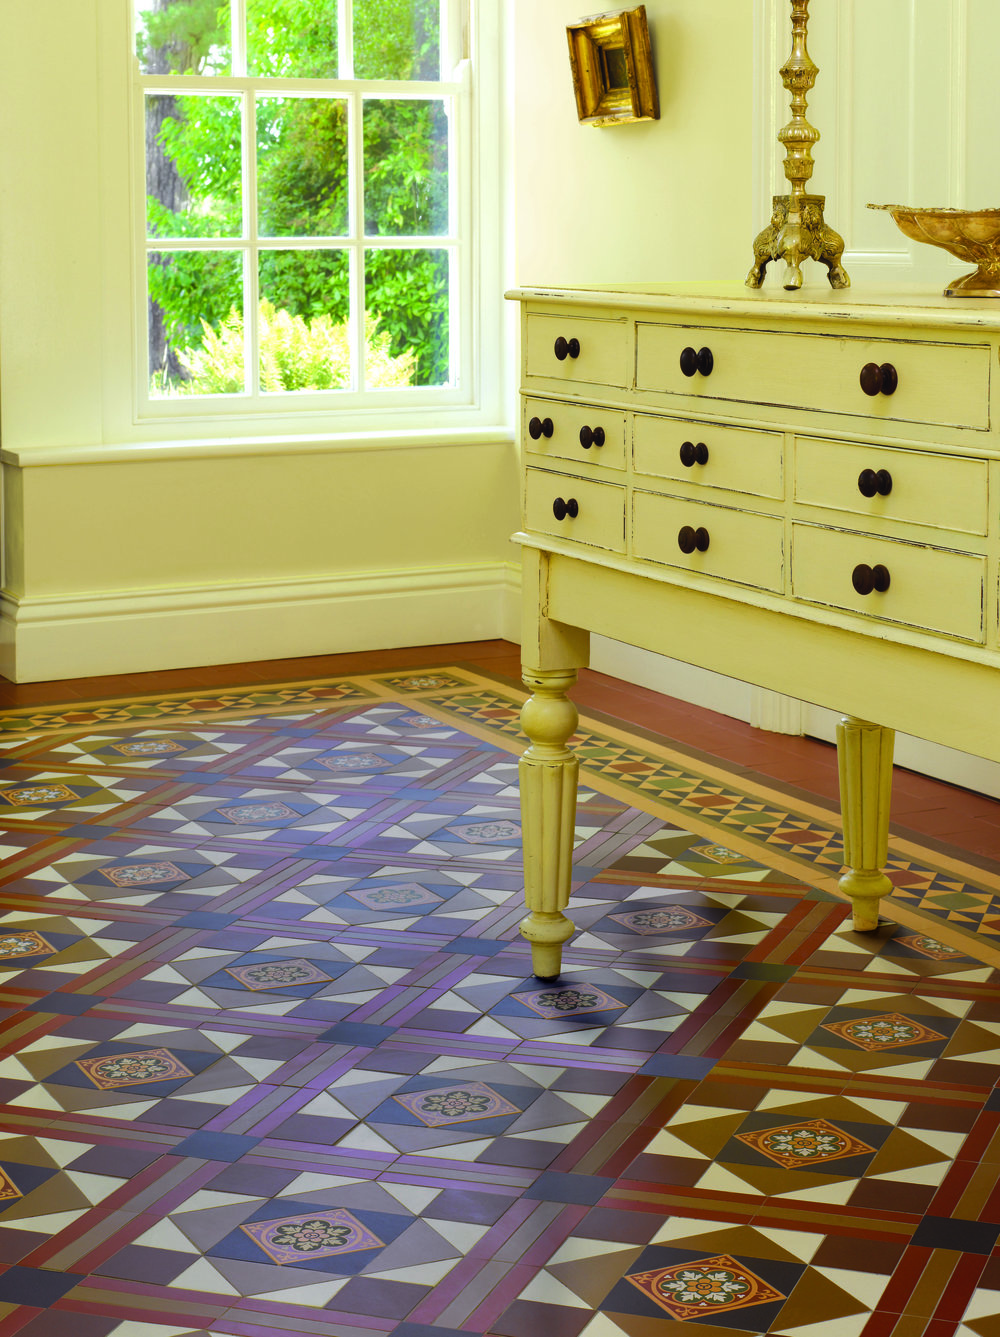 Original Style - VFT - Lindisfarne pattern with Stevenson border in Royal Palladian, Black, Dover White, Brown and Red.jpg